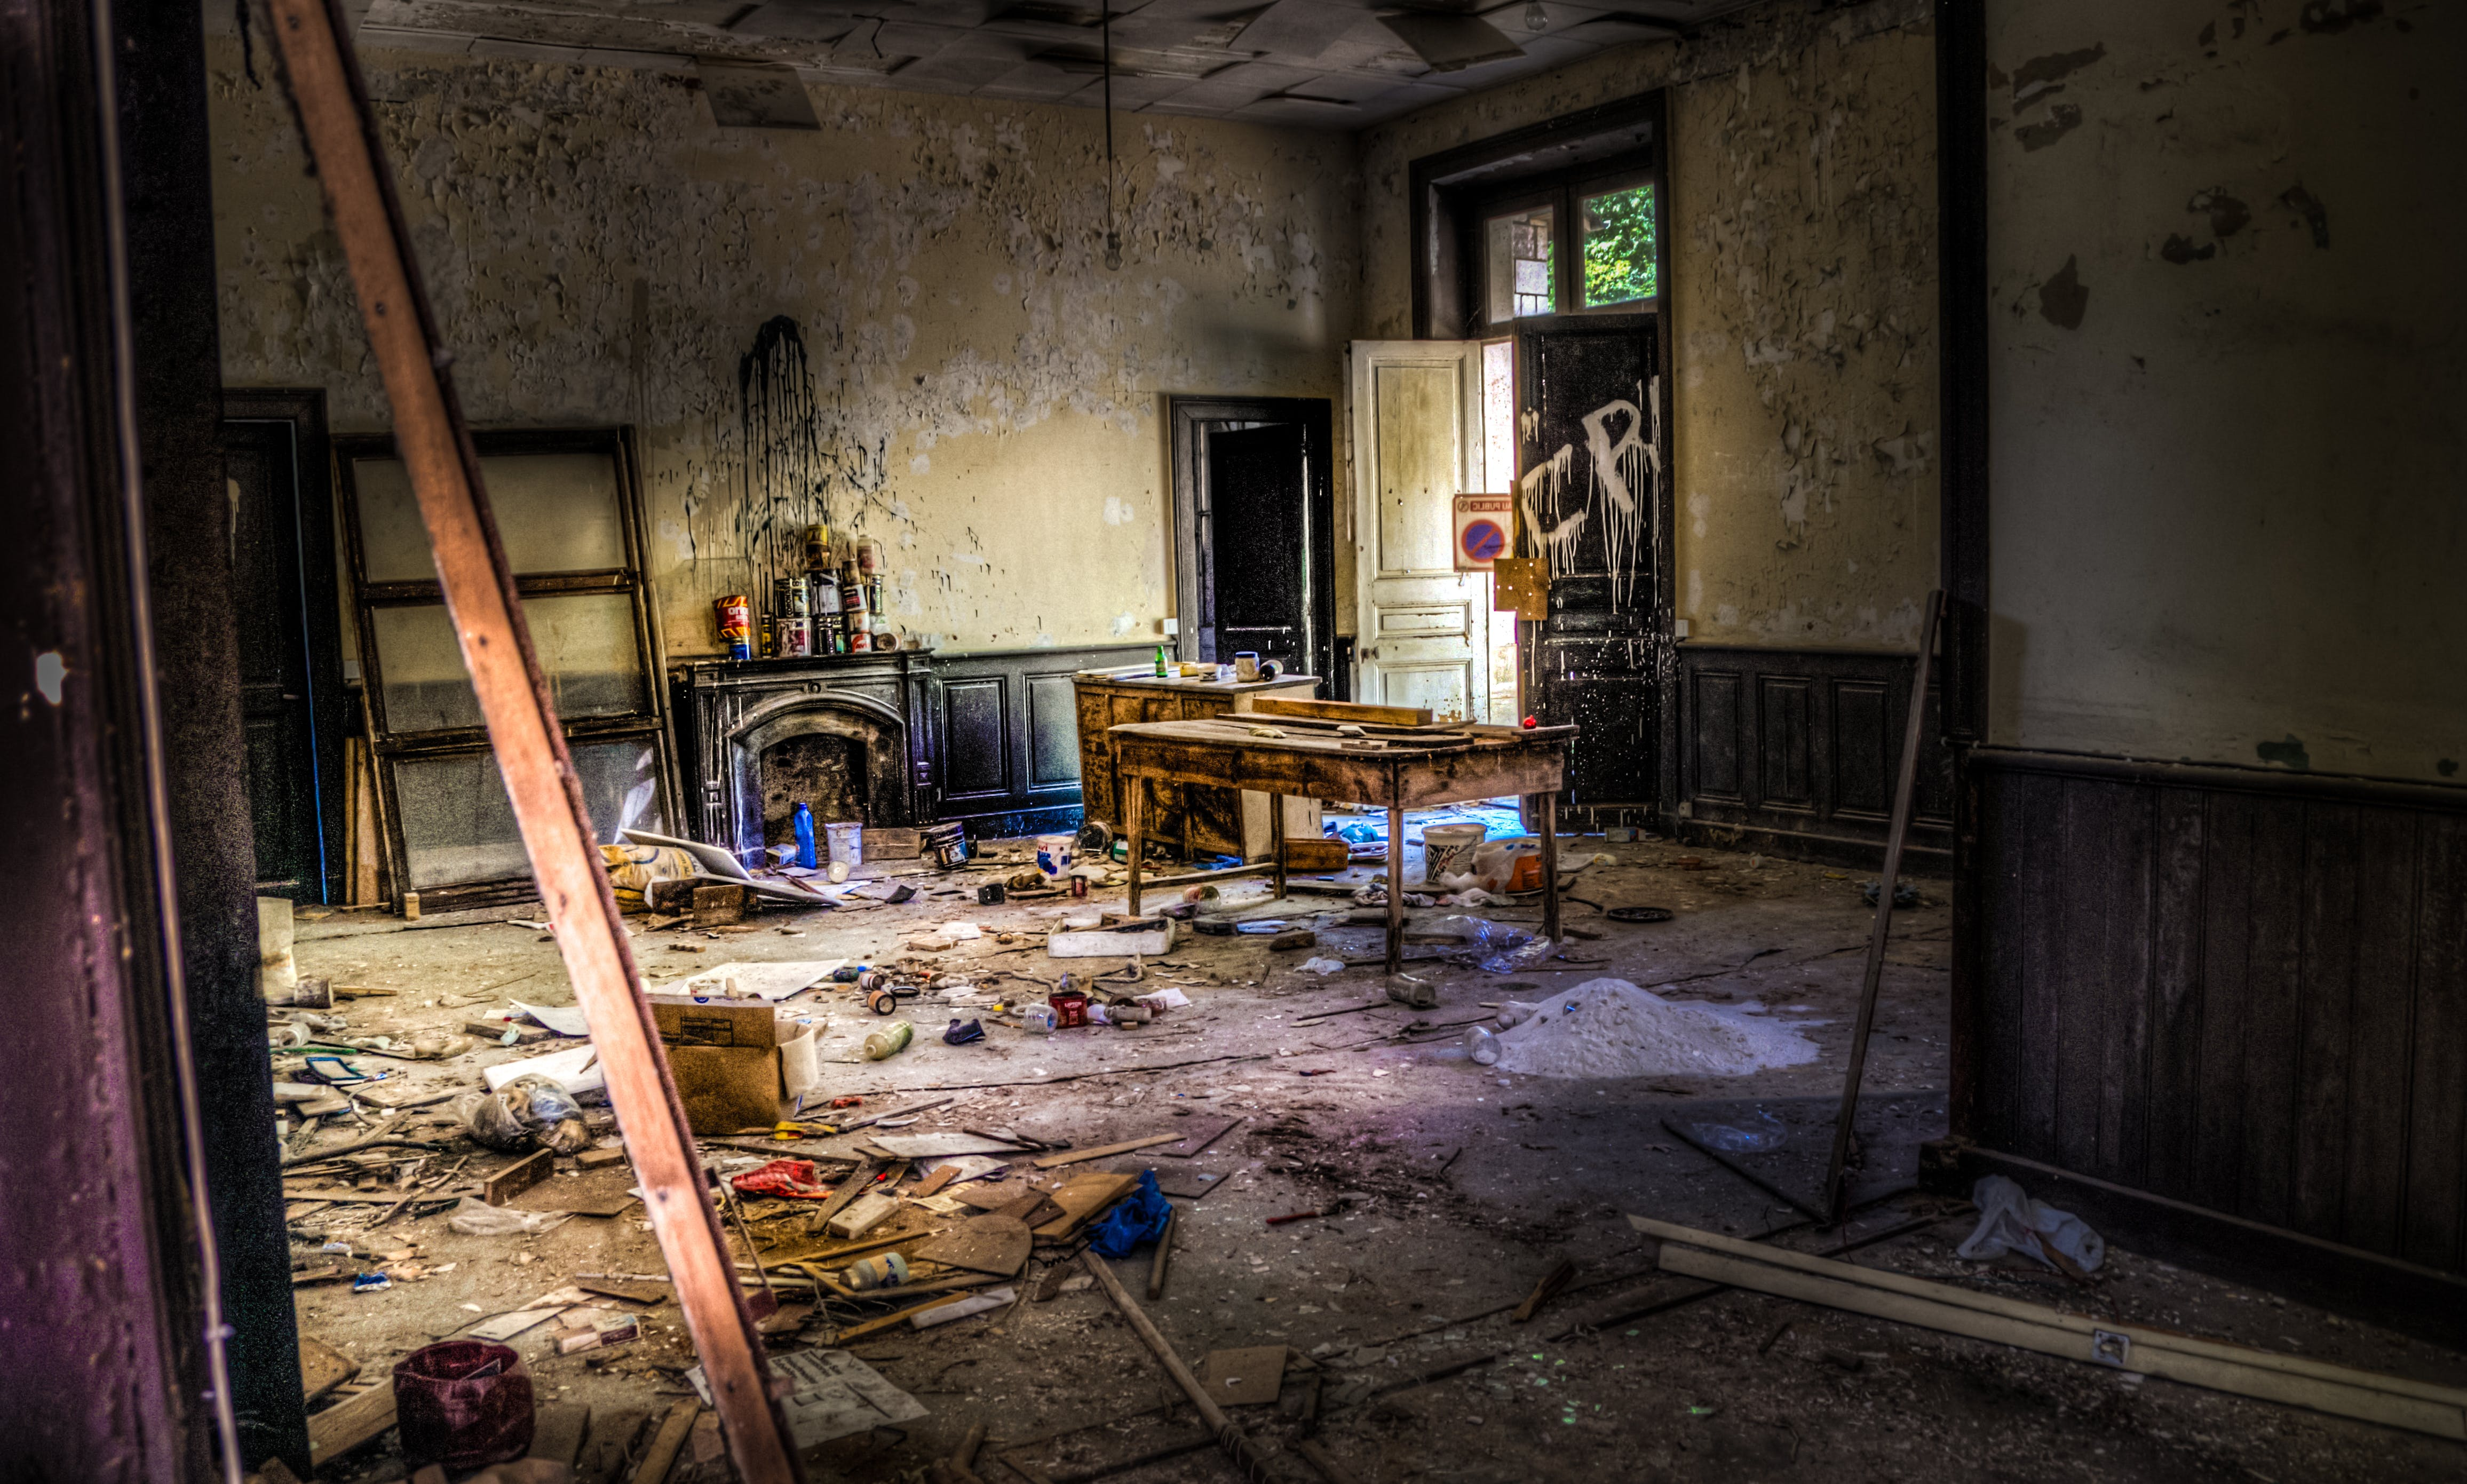 Interior of Abandoned Home